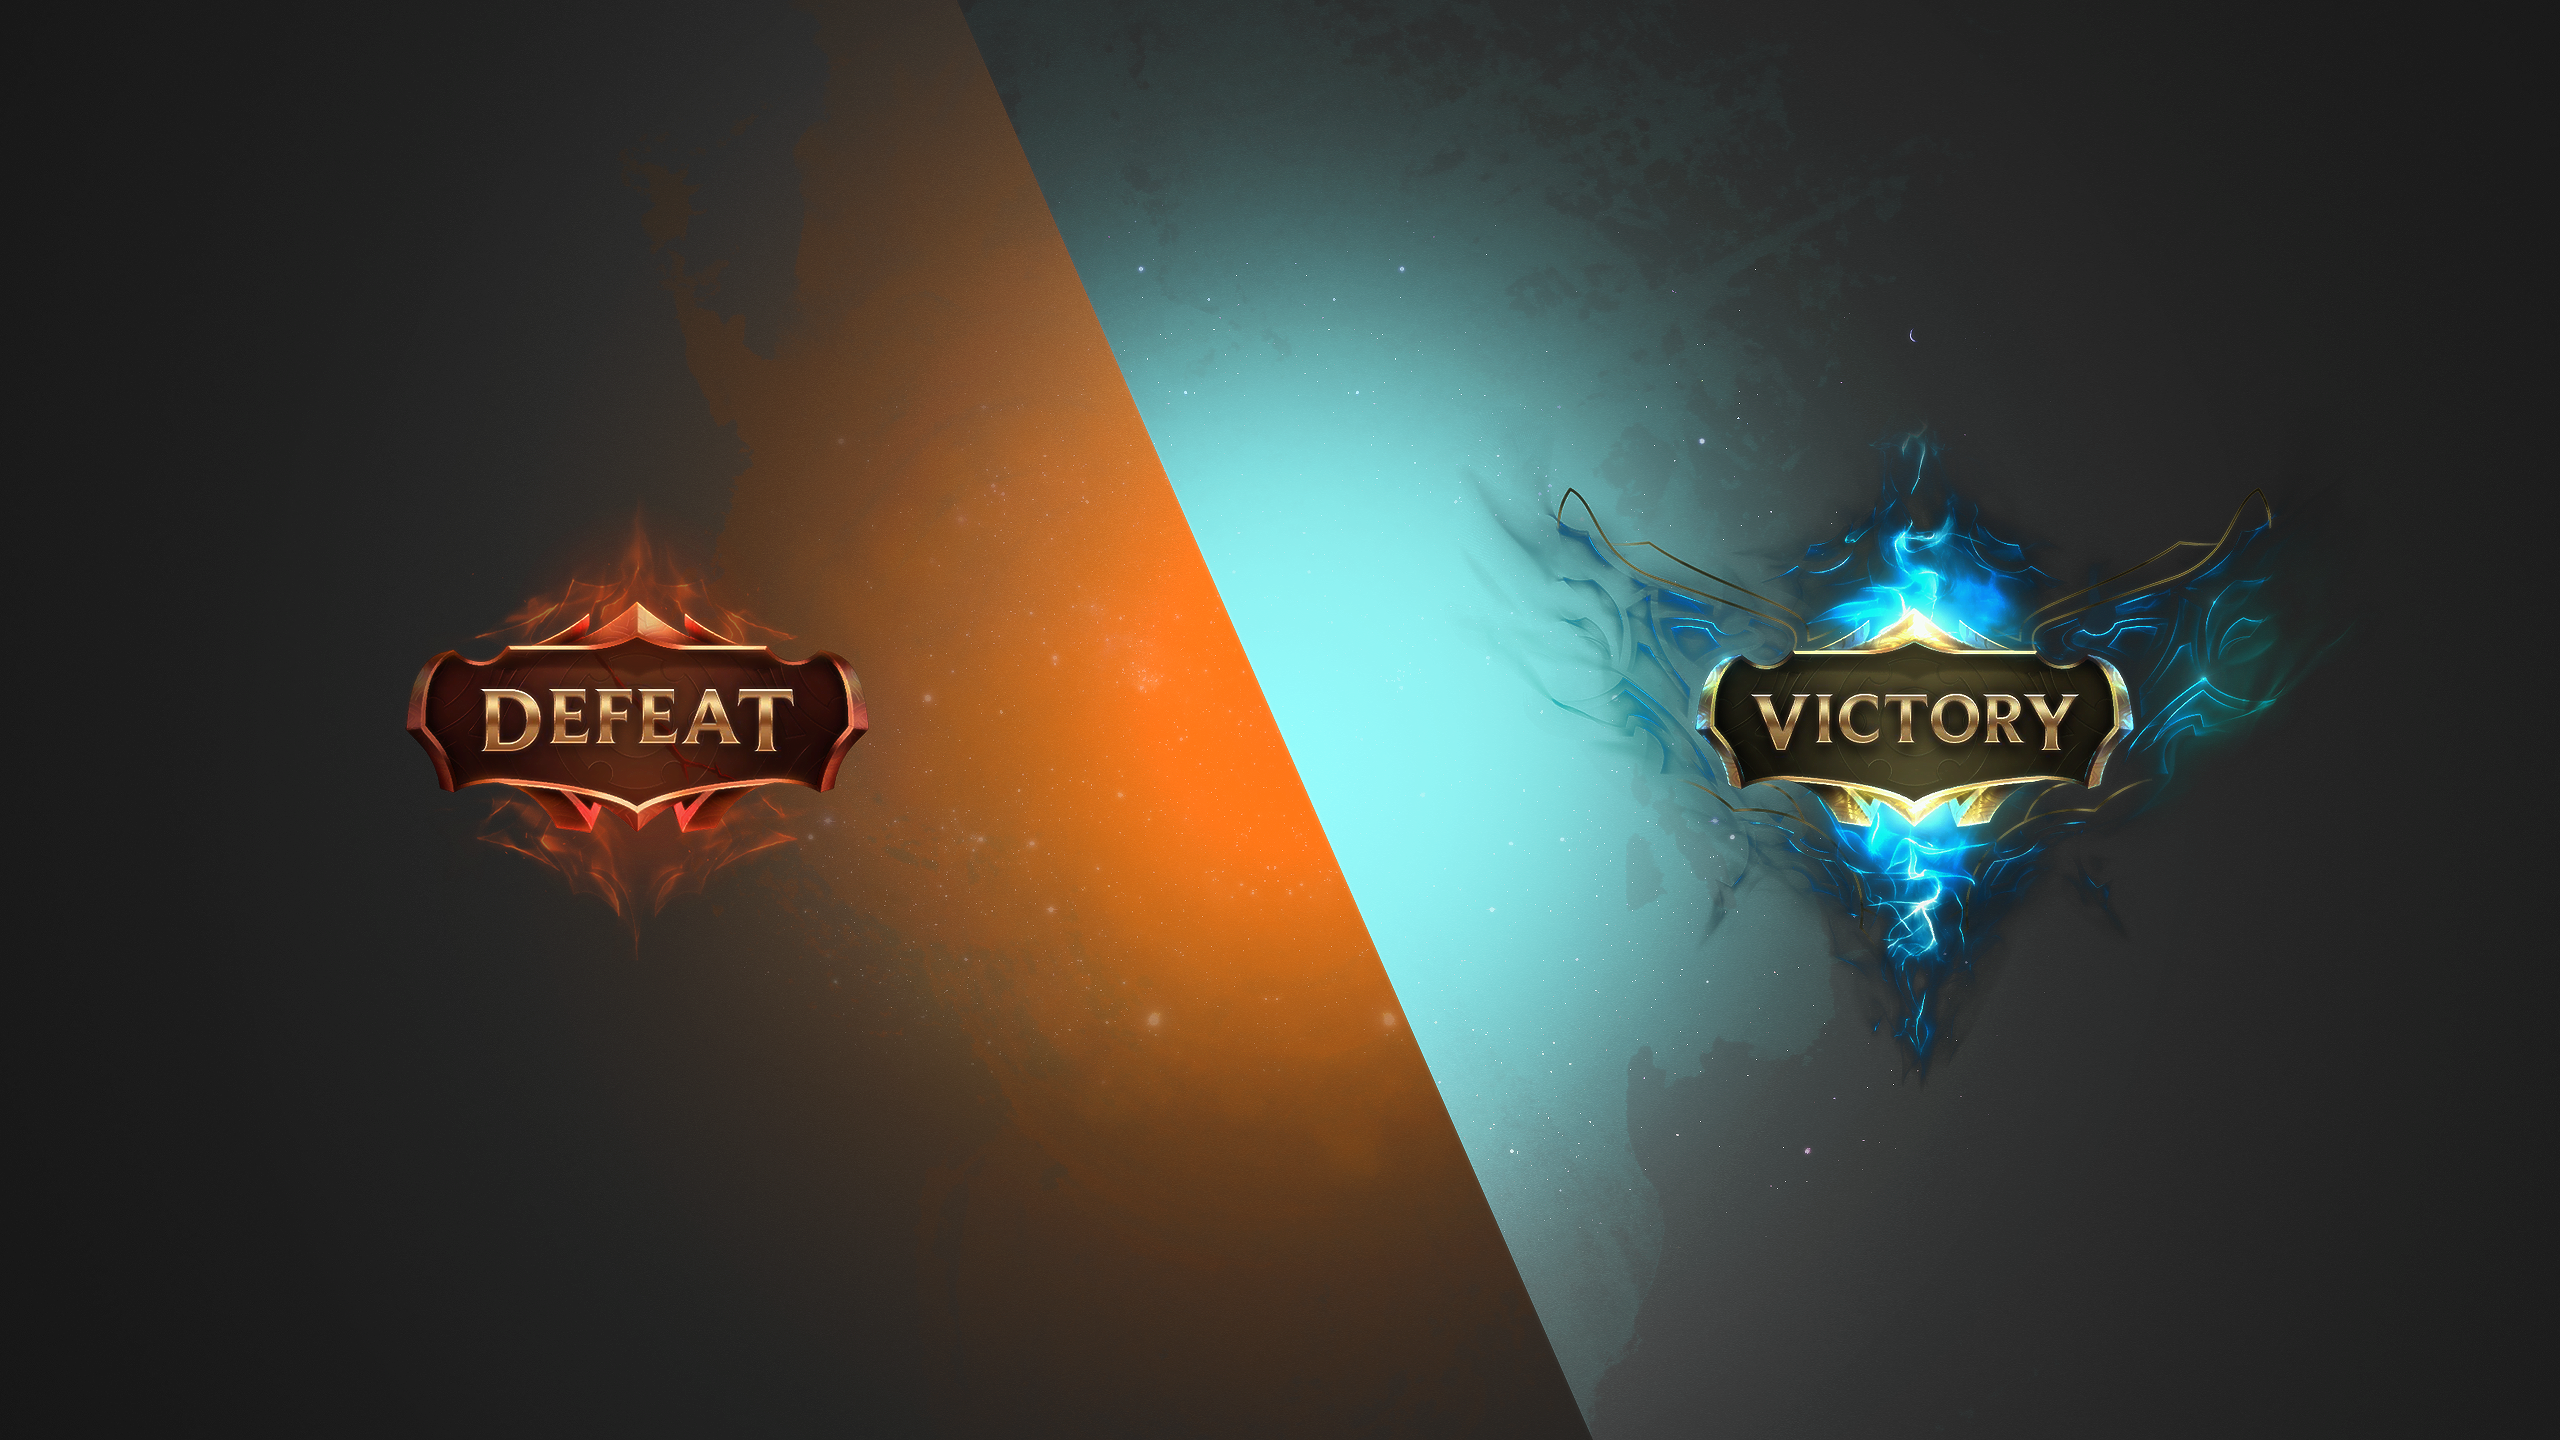 I made some wallpapers with the new VictoryDefeat images 2560x1440